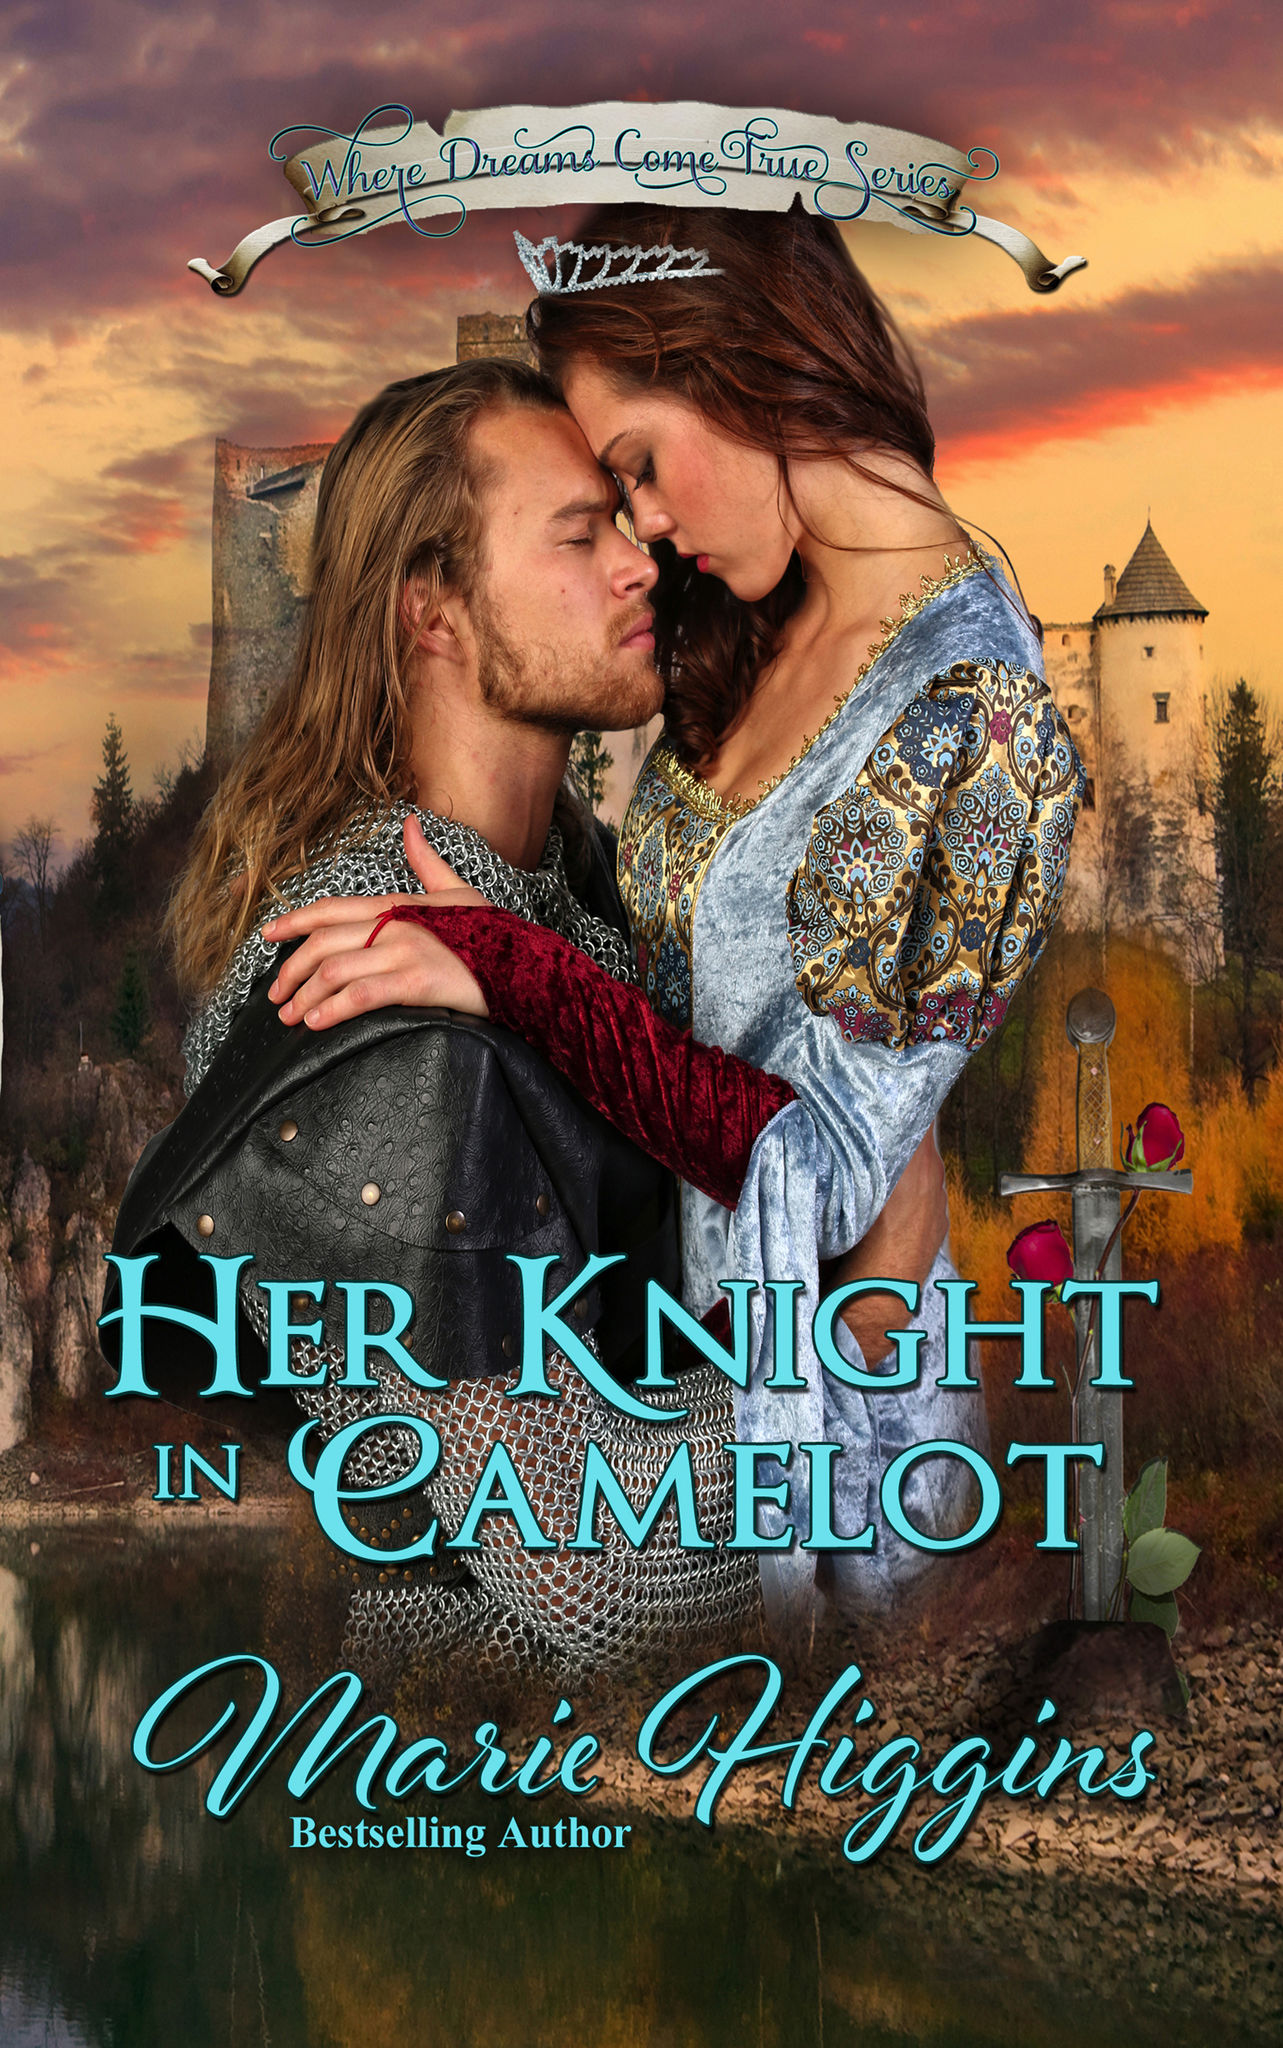 HER KNIGHT IN CAMELOT